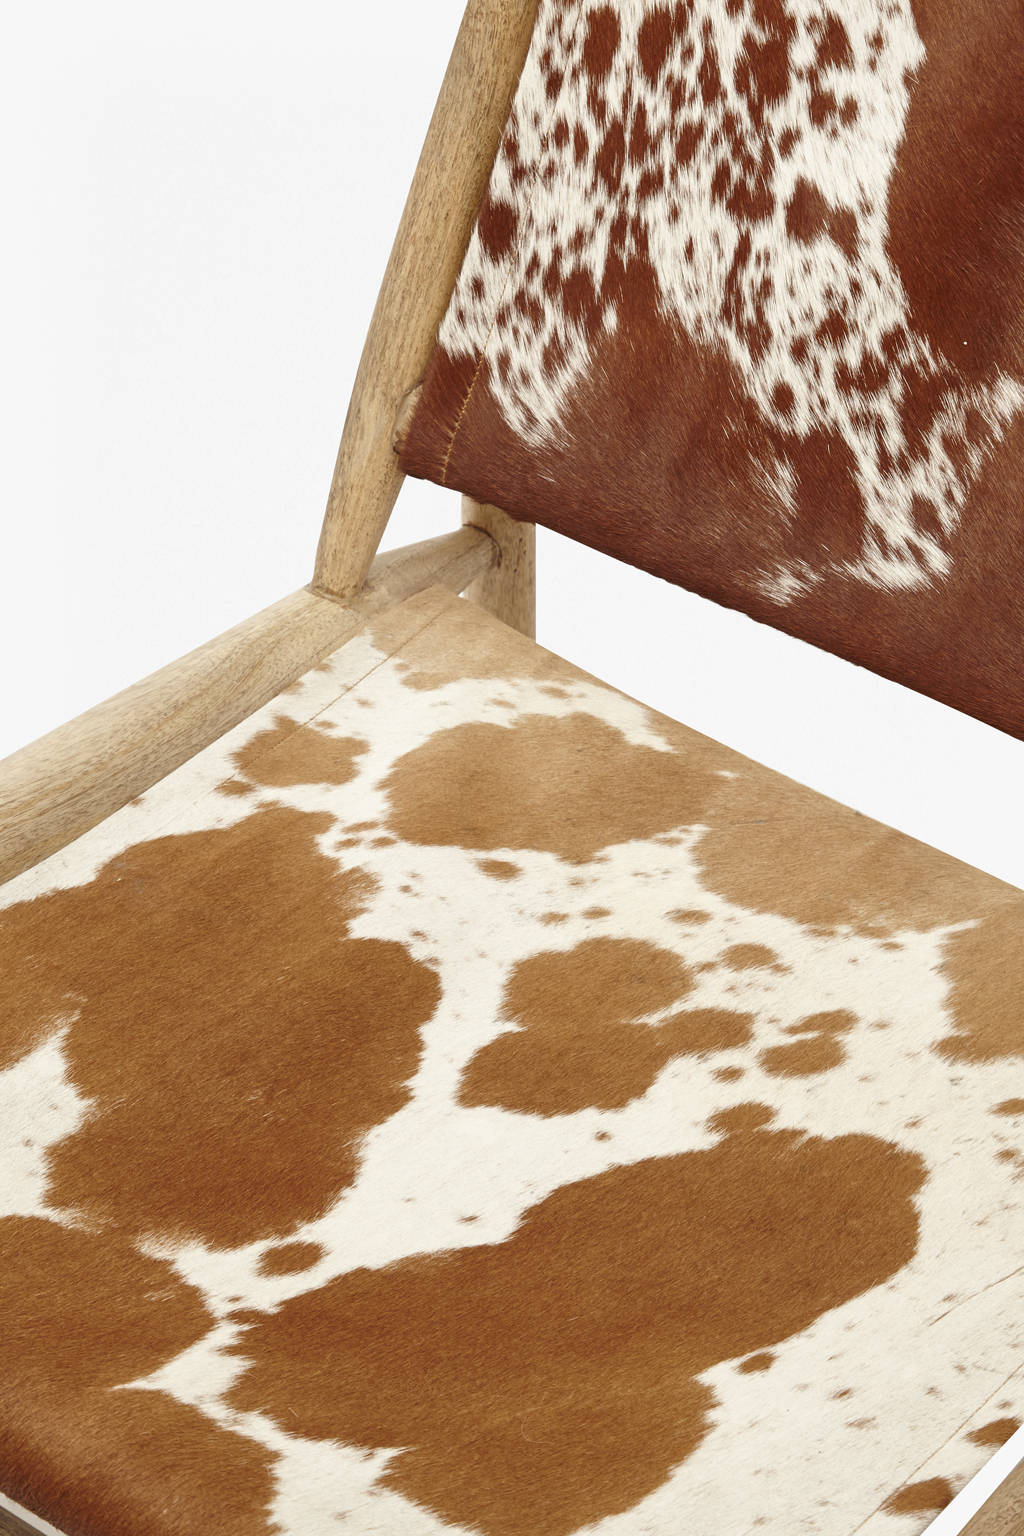 ... Cowhide Leather Chair; Cowhide Leather Chair. Loading Images.